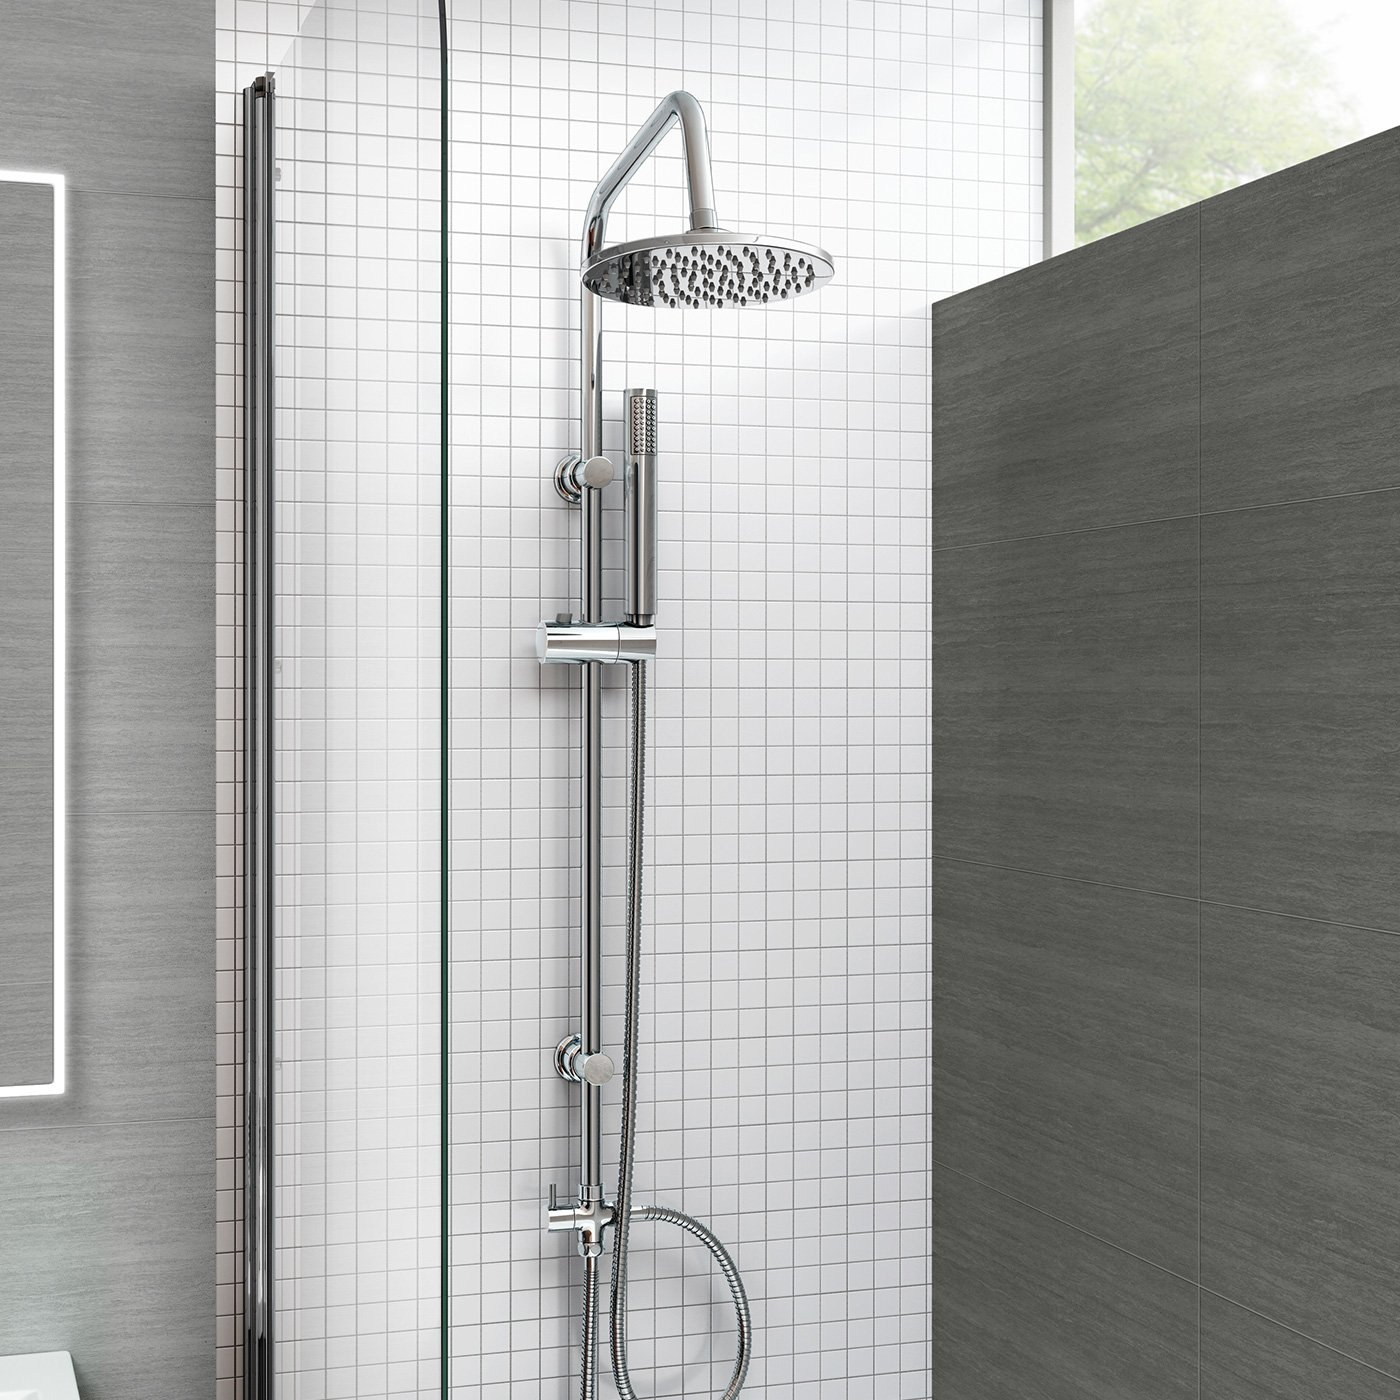 here height head shower ideas try amazon too are to low extend a hotelspa that few heads